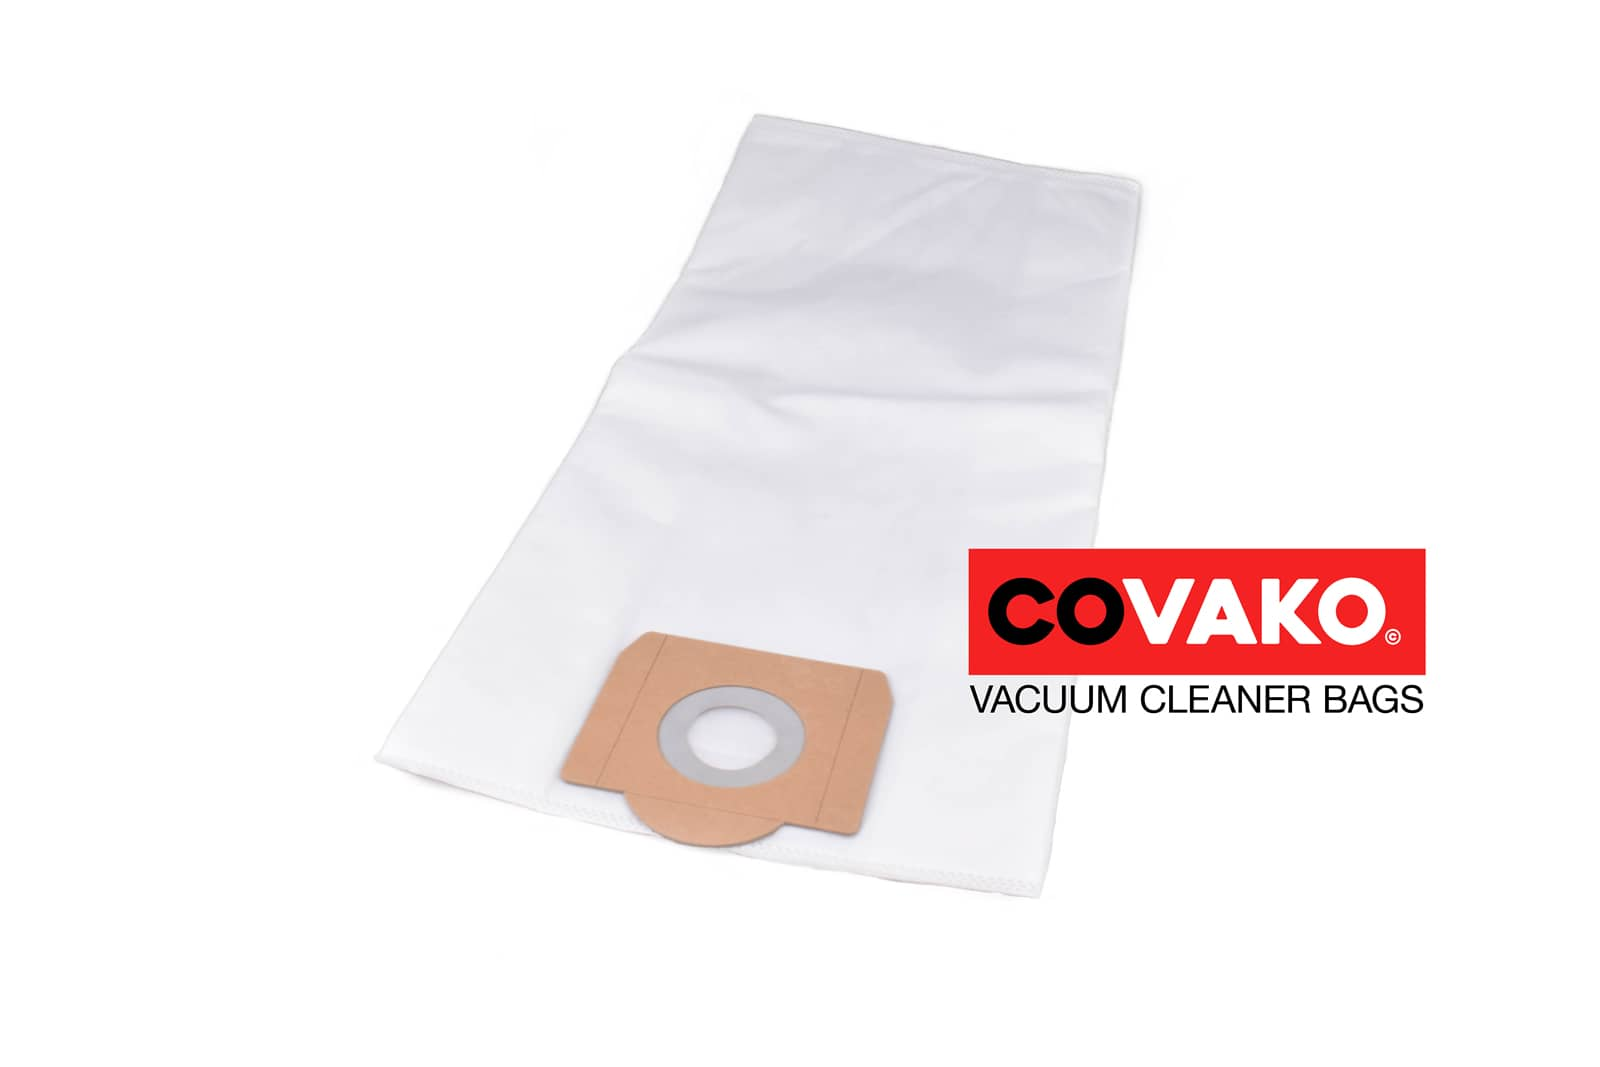 Fakir IC 640 KF / Synthesis - Fakir vacuum cleaner bags